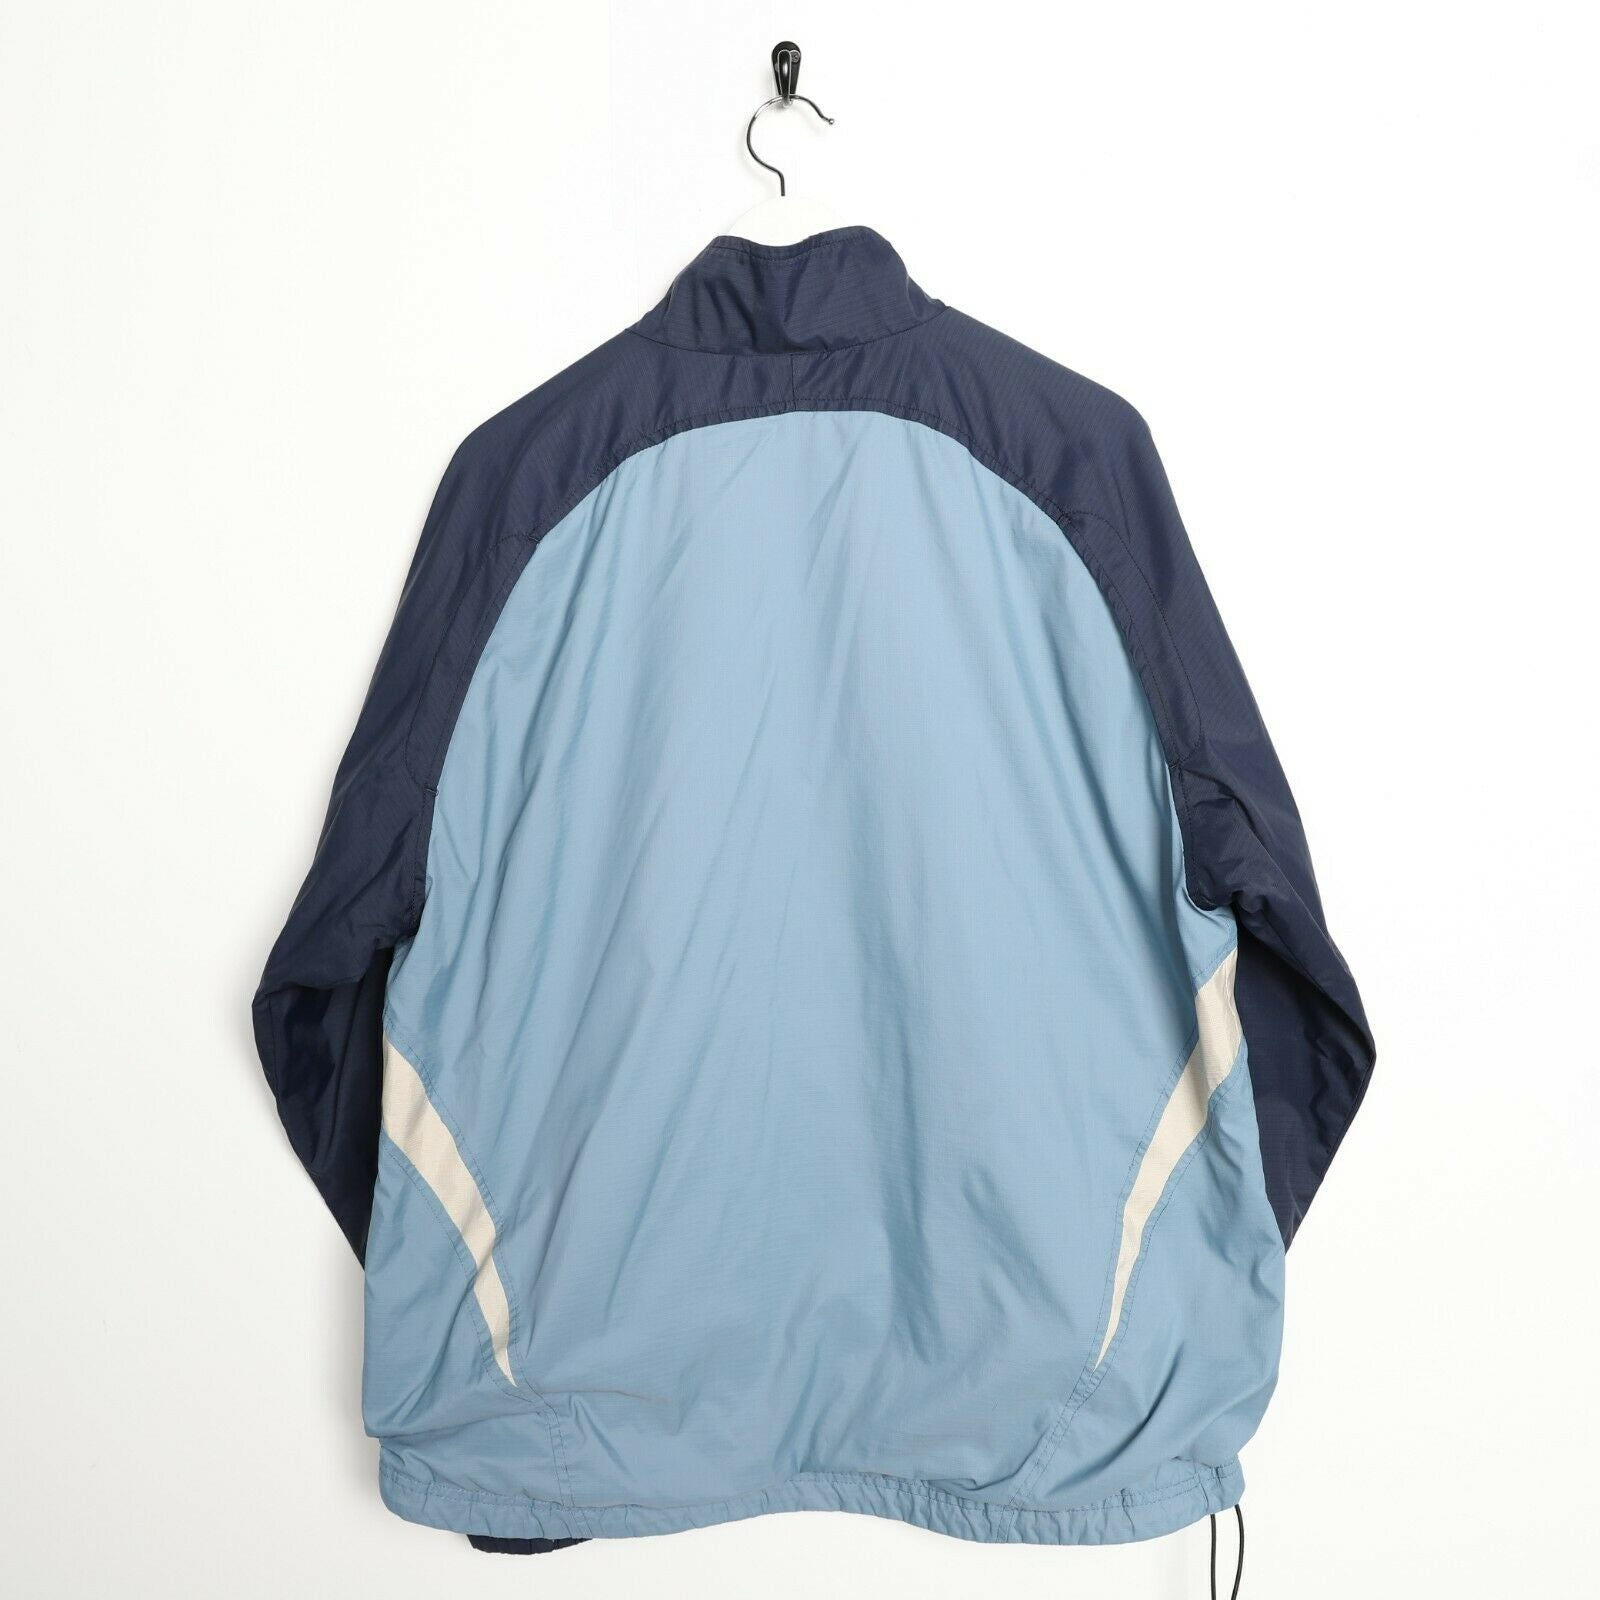 Vintage NIKE Soft Shell Windbreaker Jacket Blue | Large L